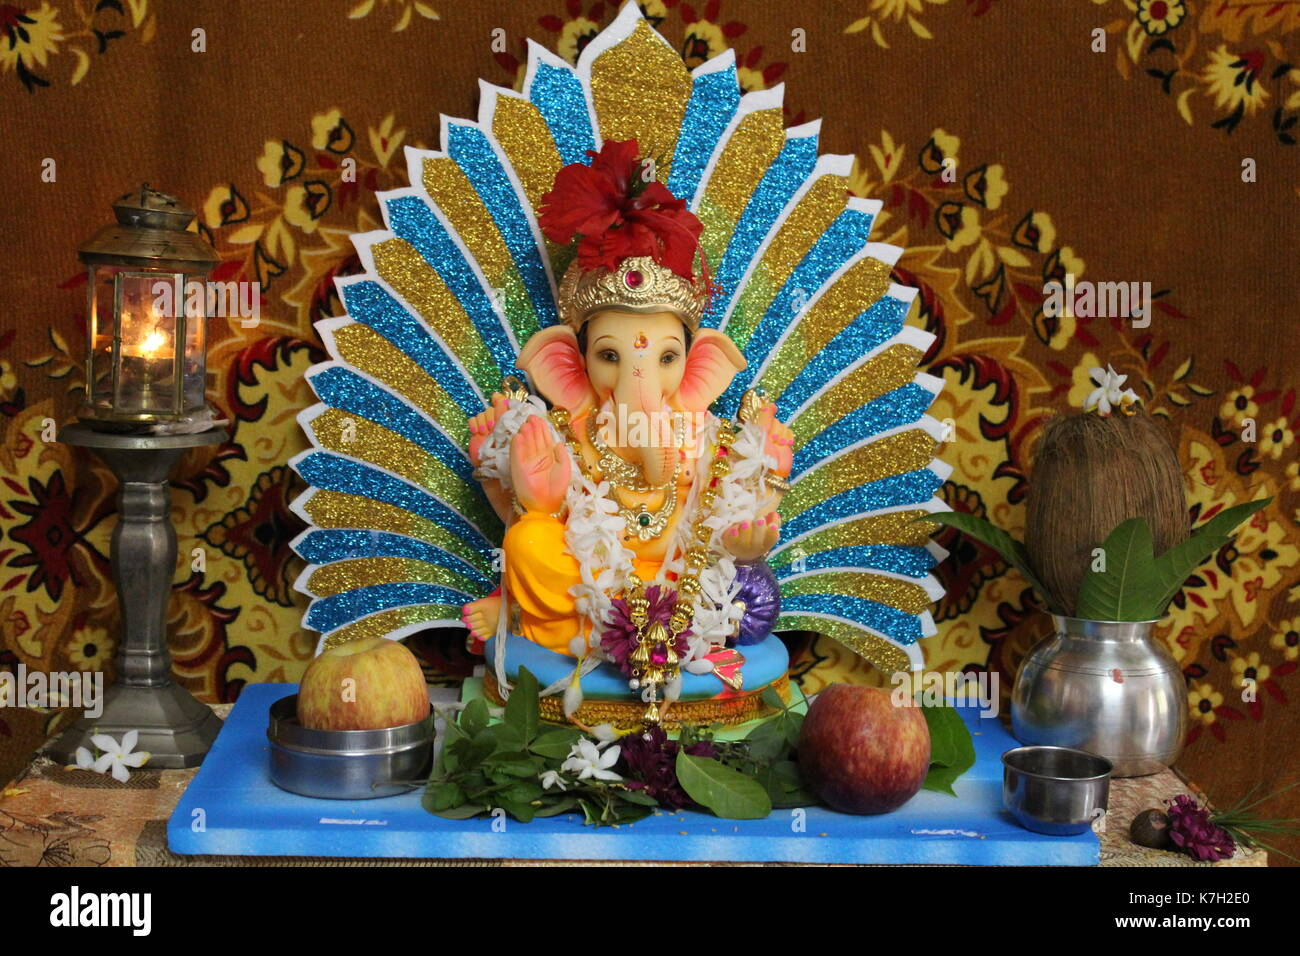 An Home Idol Of Lord Ganesha Along With The Decorations During 10 Days  Ganesh Festival Celebrated